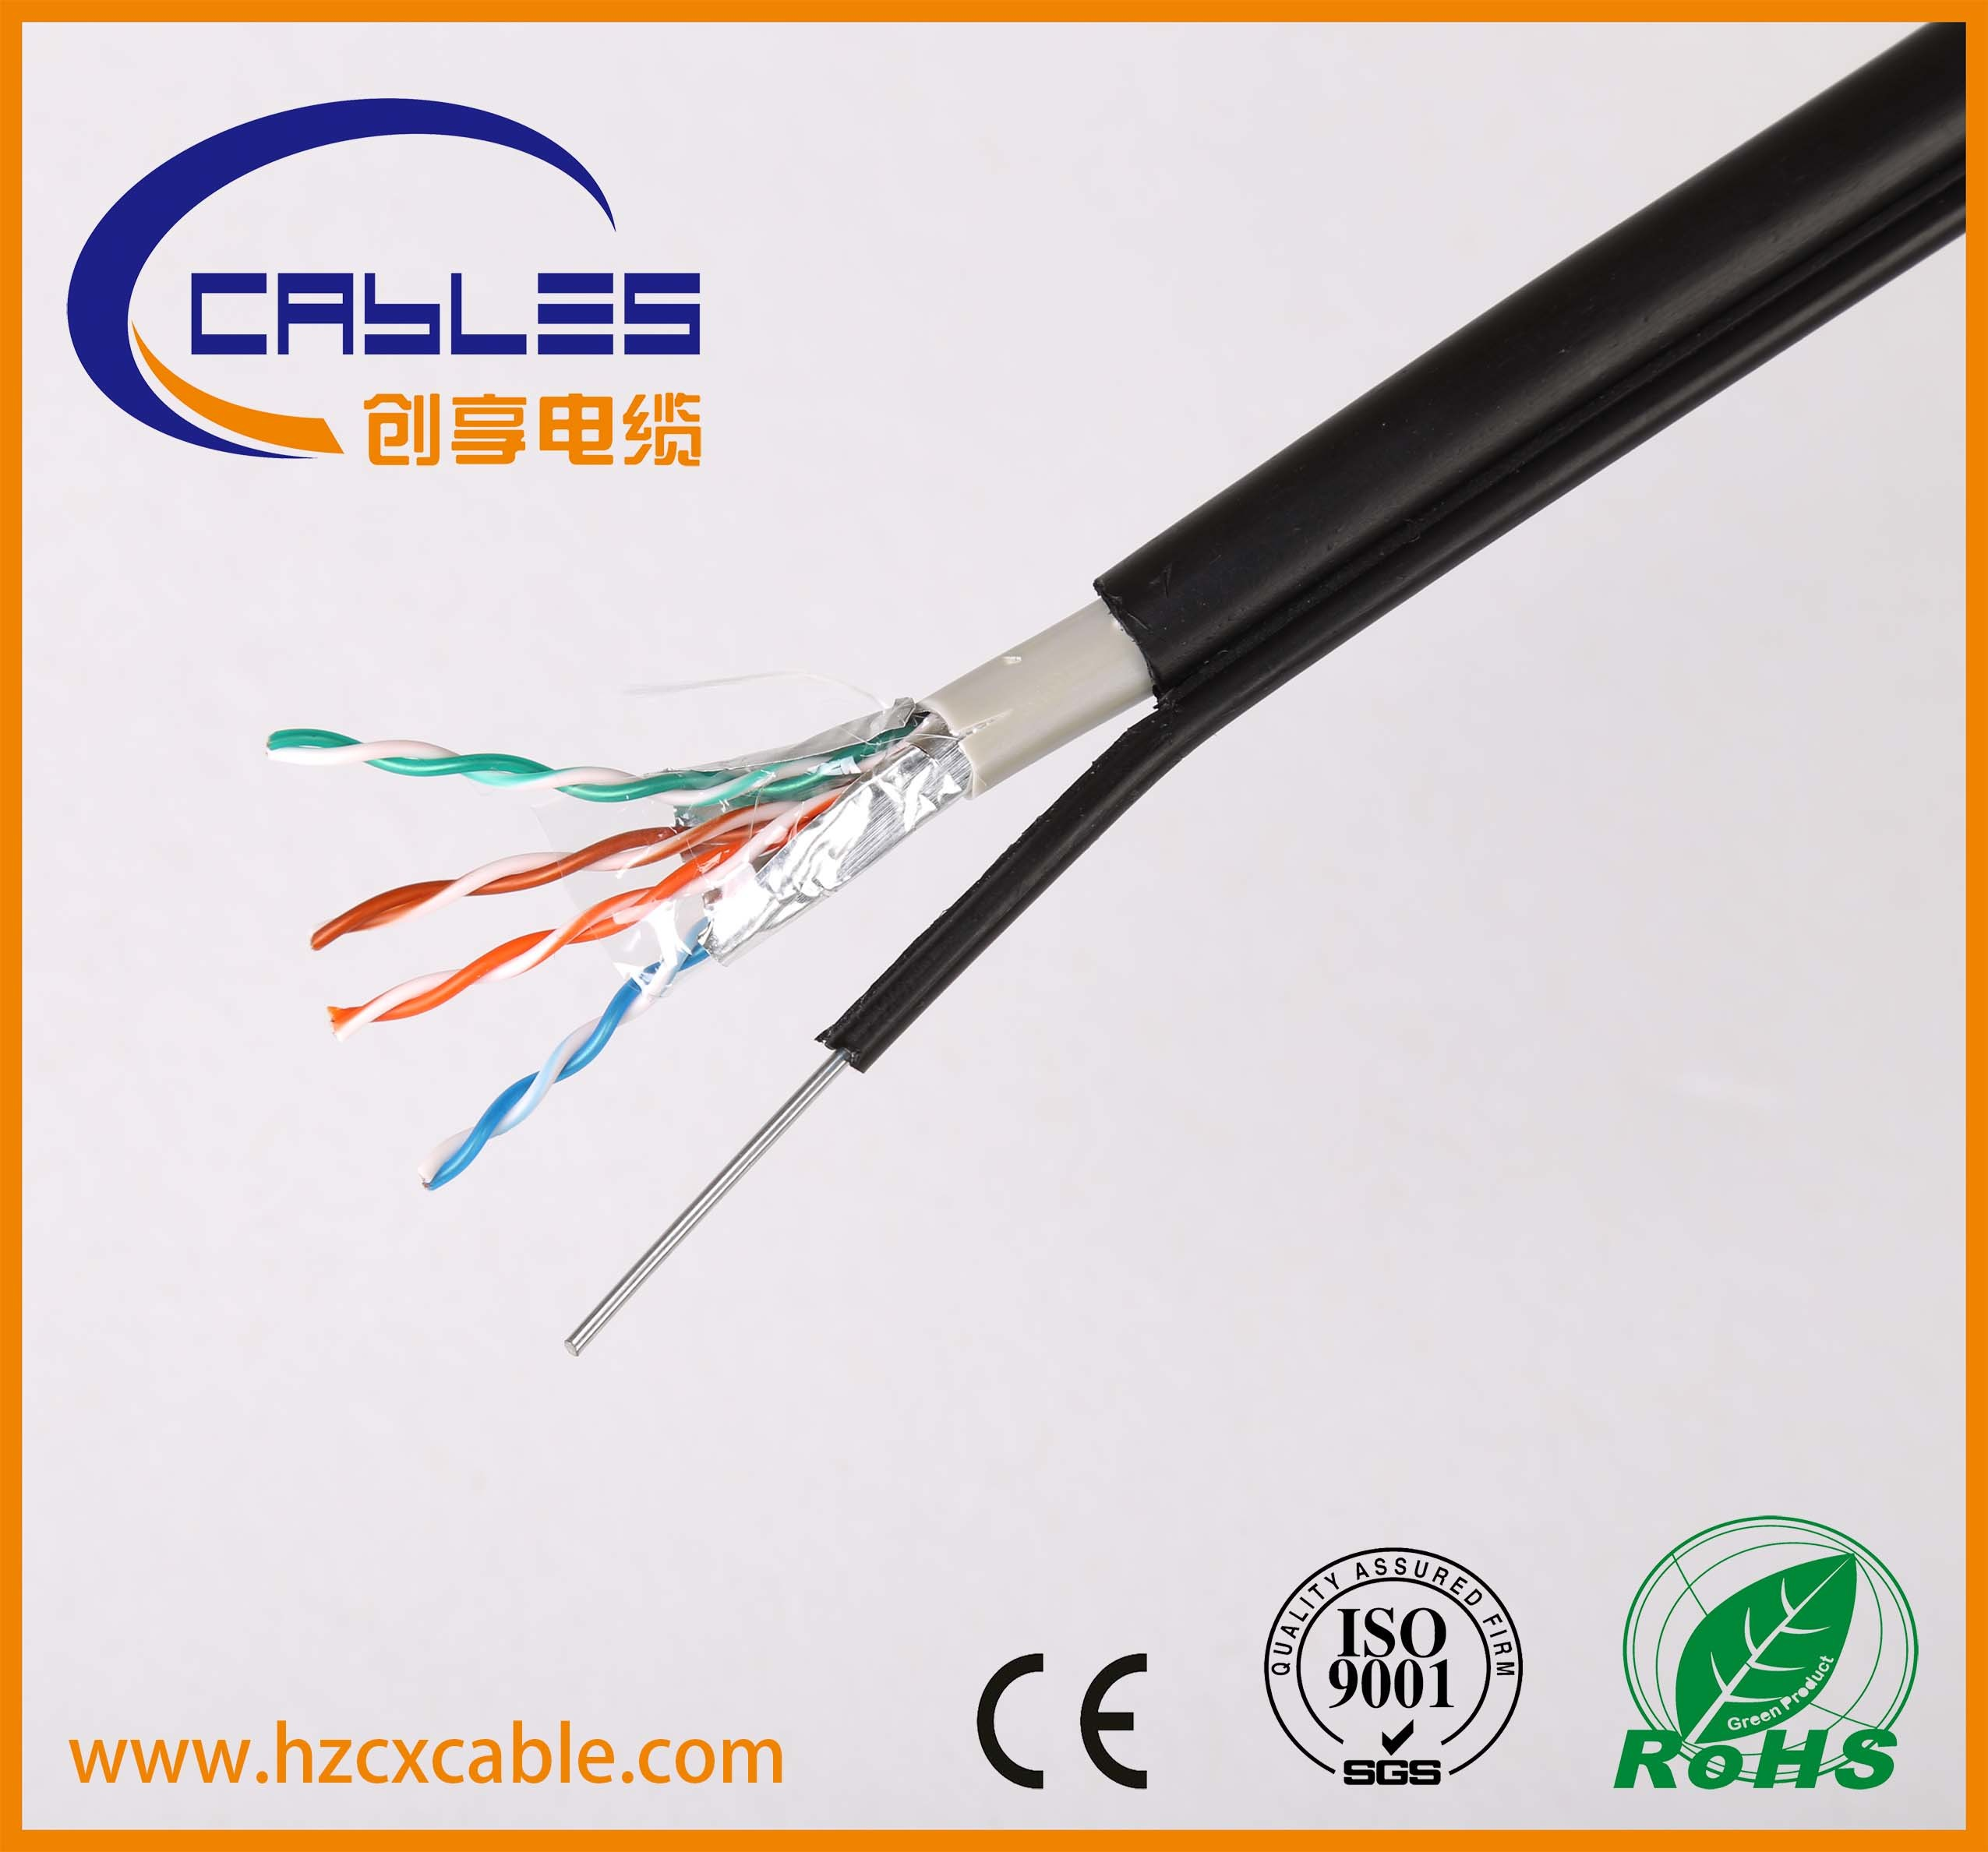 Cat5e CAT6 FTP UTP SFTP Outdoor Cable with Steel Messenger